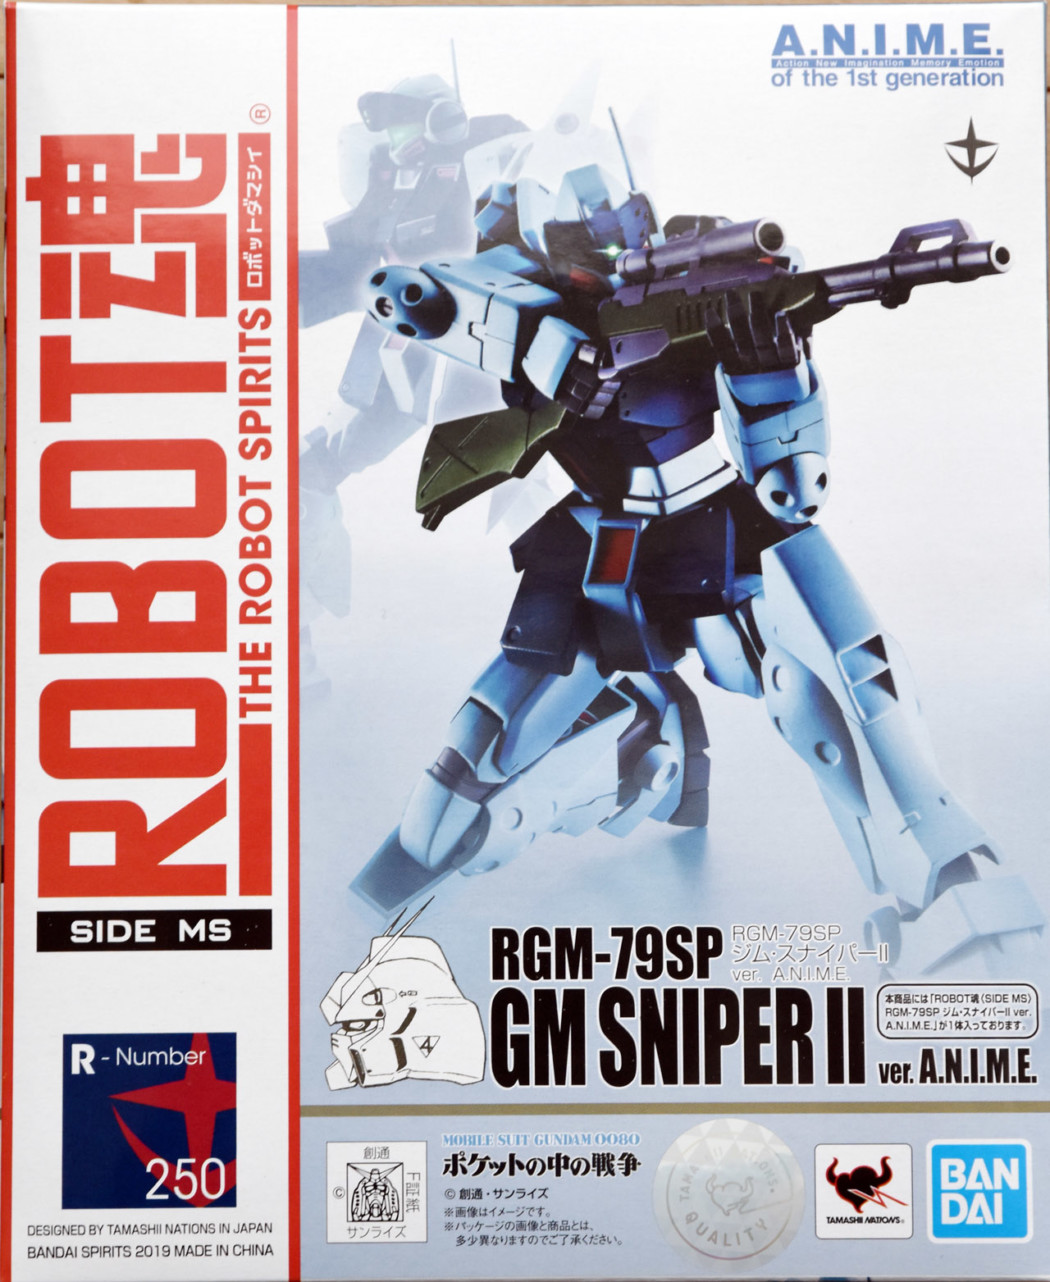 Robot Damashii RGM-79SP GM Sniper II ver. A.N.I.M.E. by Bandai (Part 1: Unbox)